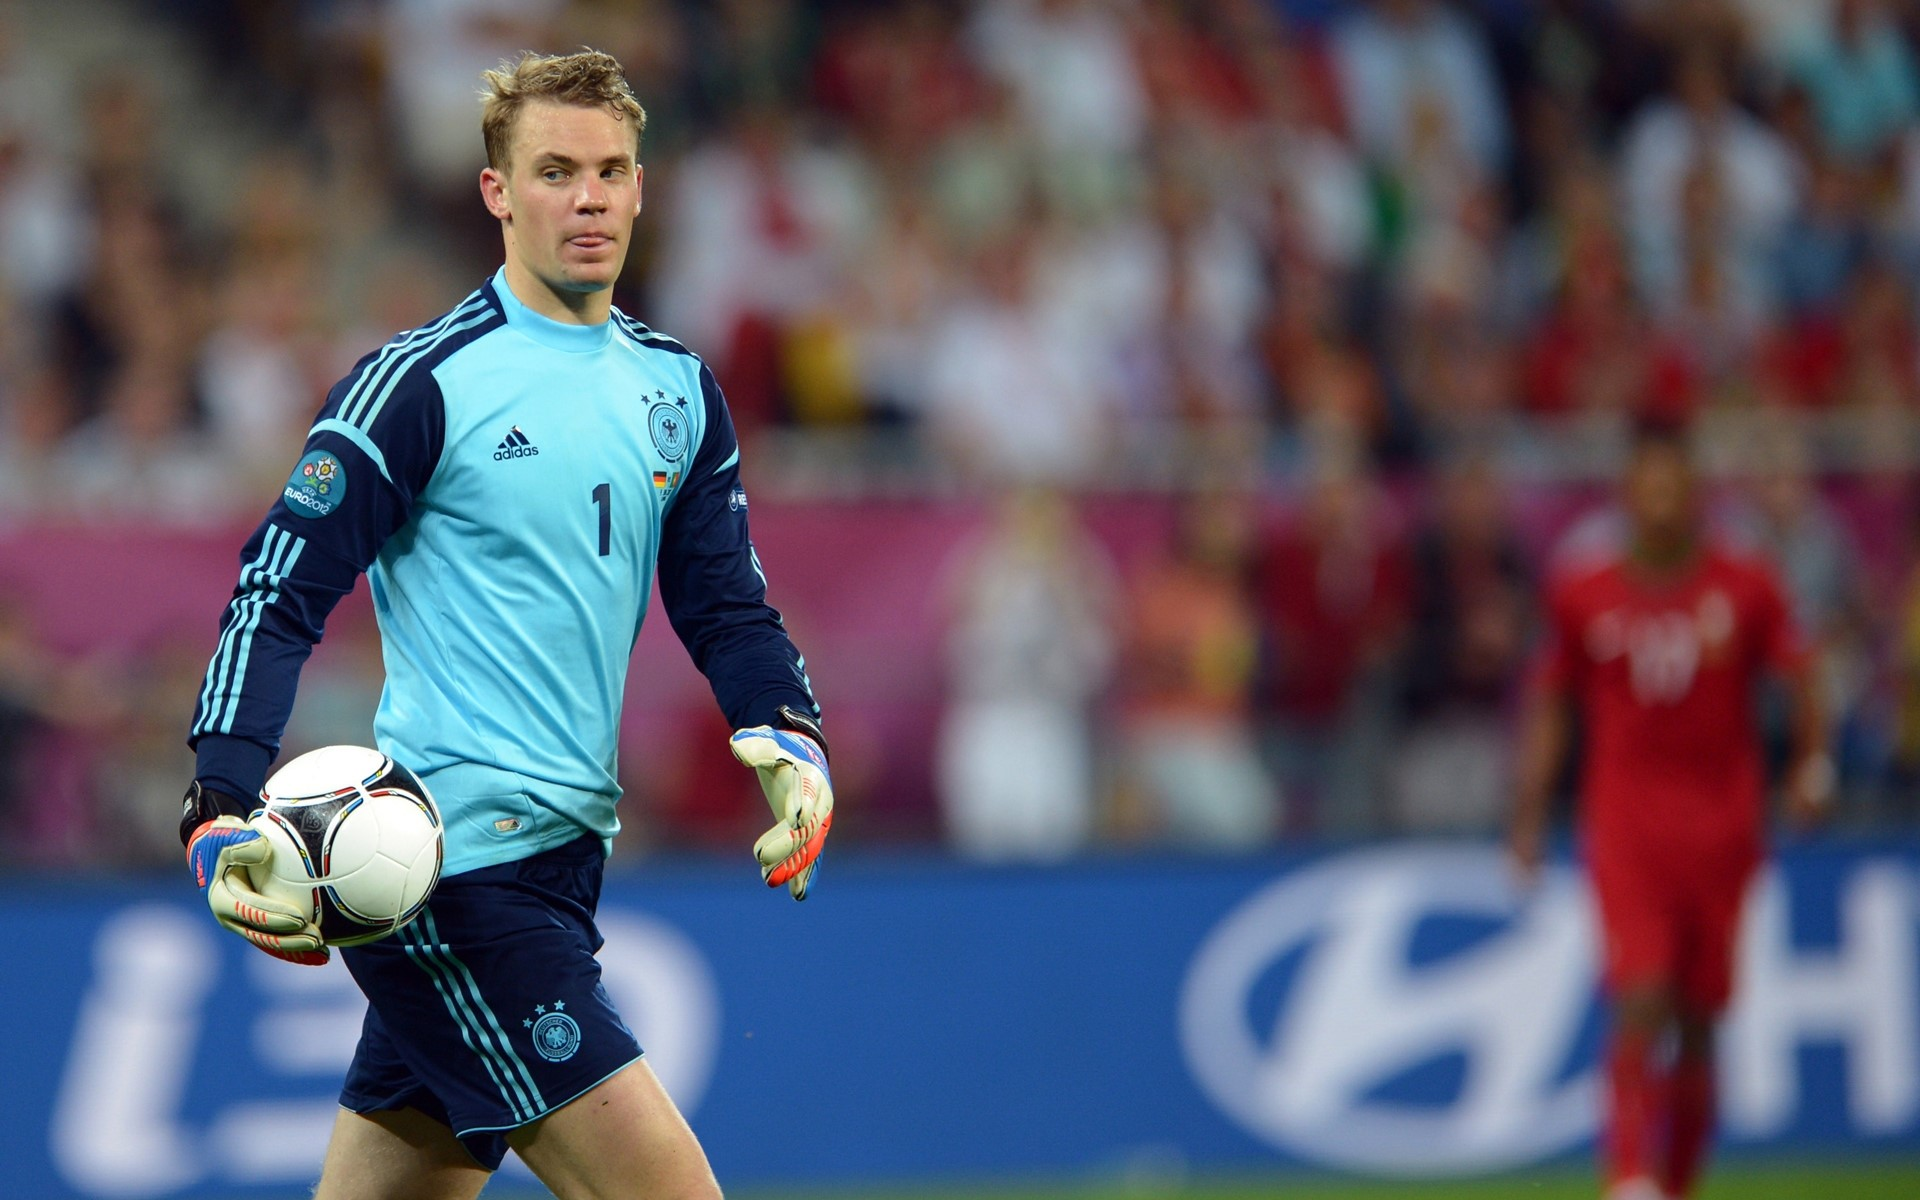 Pictures of Manuel Neuer